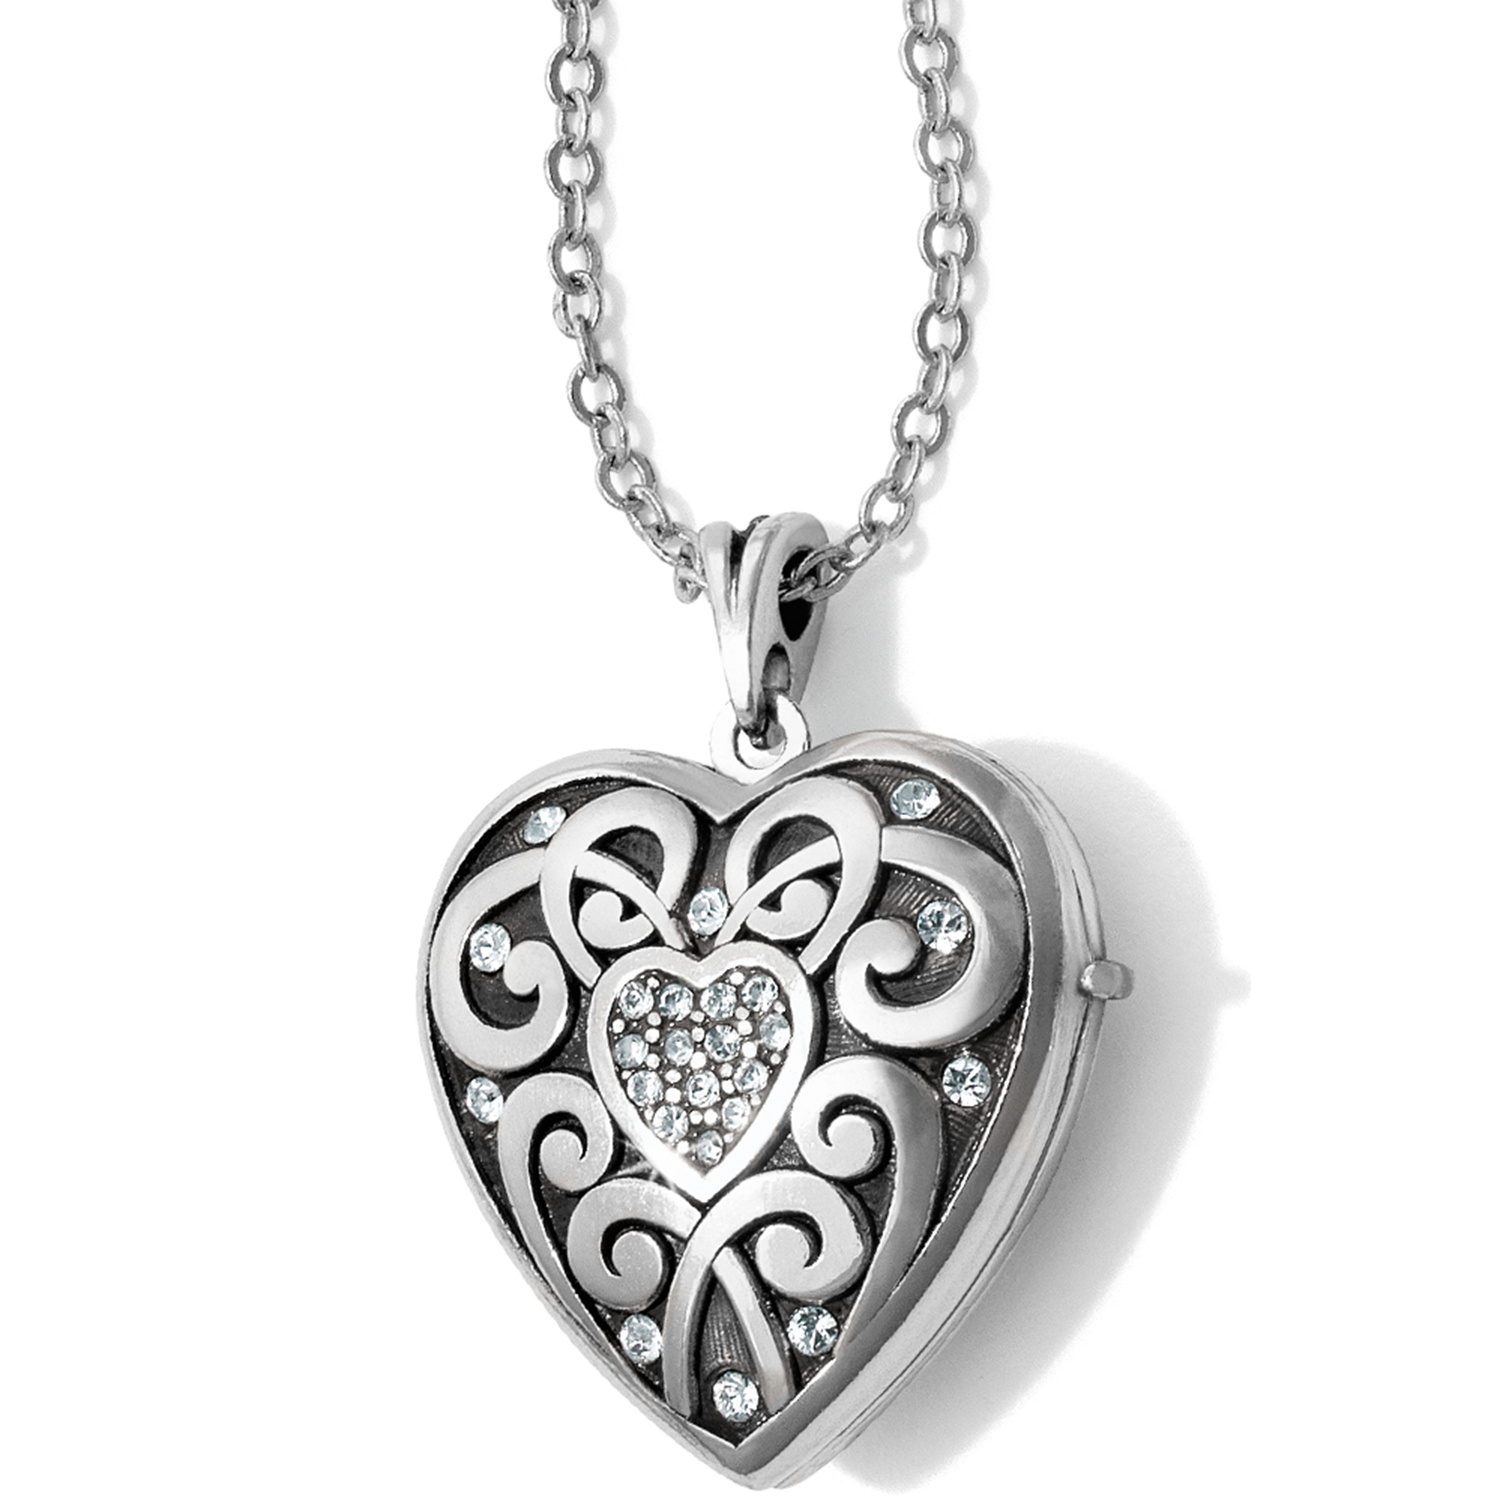 Sweet Memory Locket Necklace in addition Kaleidoscope Charm Bracelet in addition Causes Prevention And Symptoms Of Lead Poisoning furthermore Pinto Ranch Cinco Peso Engraved Bolo Tie likewise 161204133. on jewelry care tips